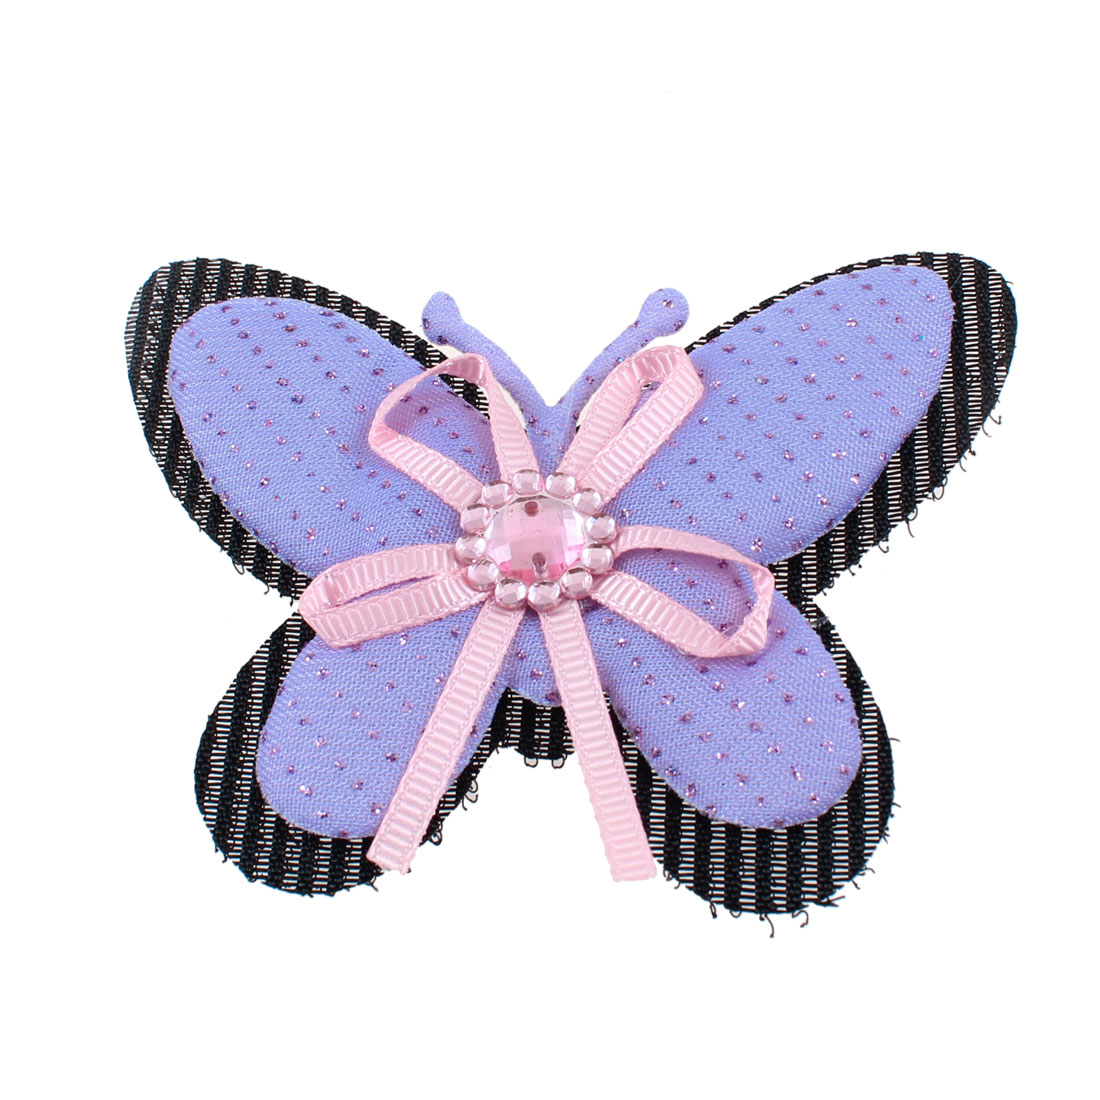 Unique Bargains Purple Butterfly Shaped Holding Foretop Hair Bangs Magic Sheet